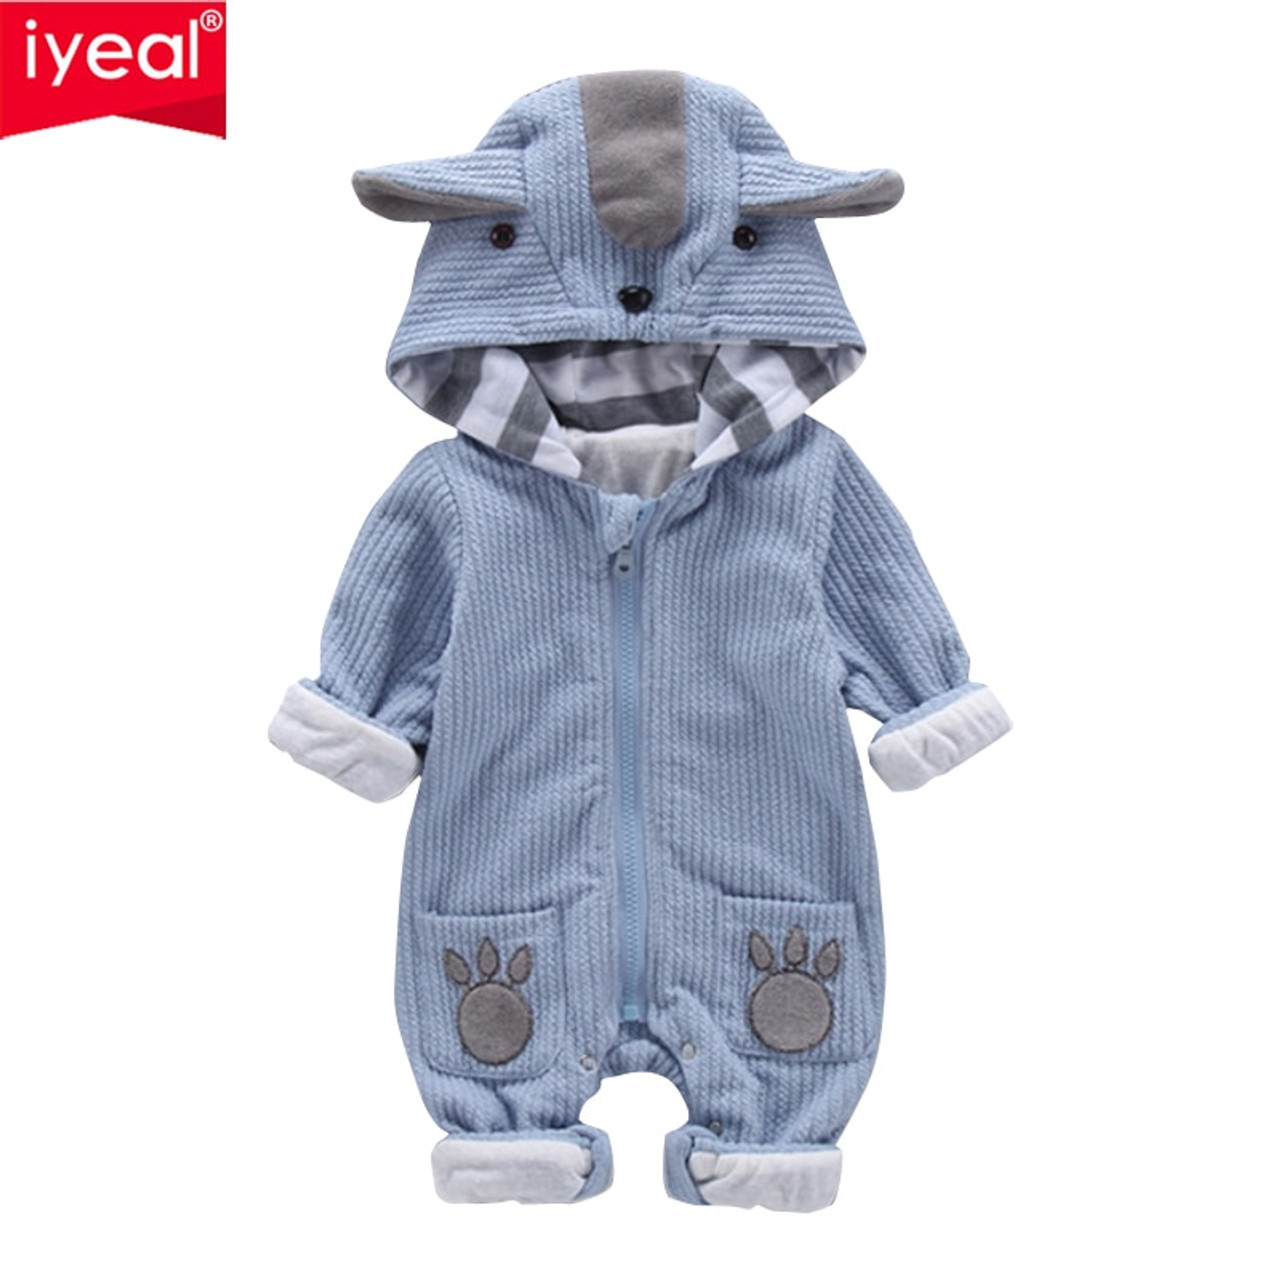 a3ddd271a IYEAL New Autumn Winter Baby Rompers Cute Hooded Cartoon Ear Infant ...